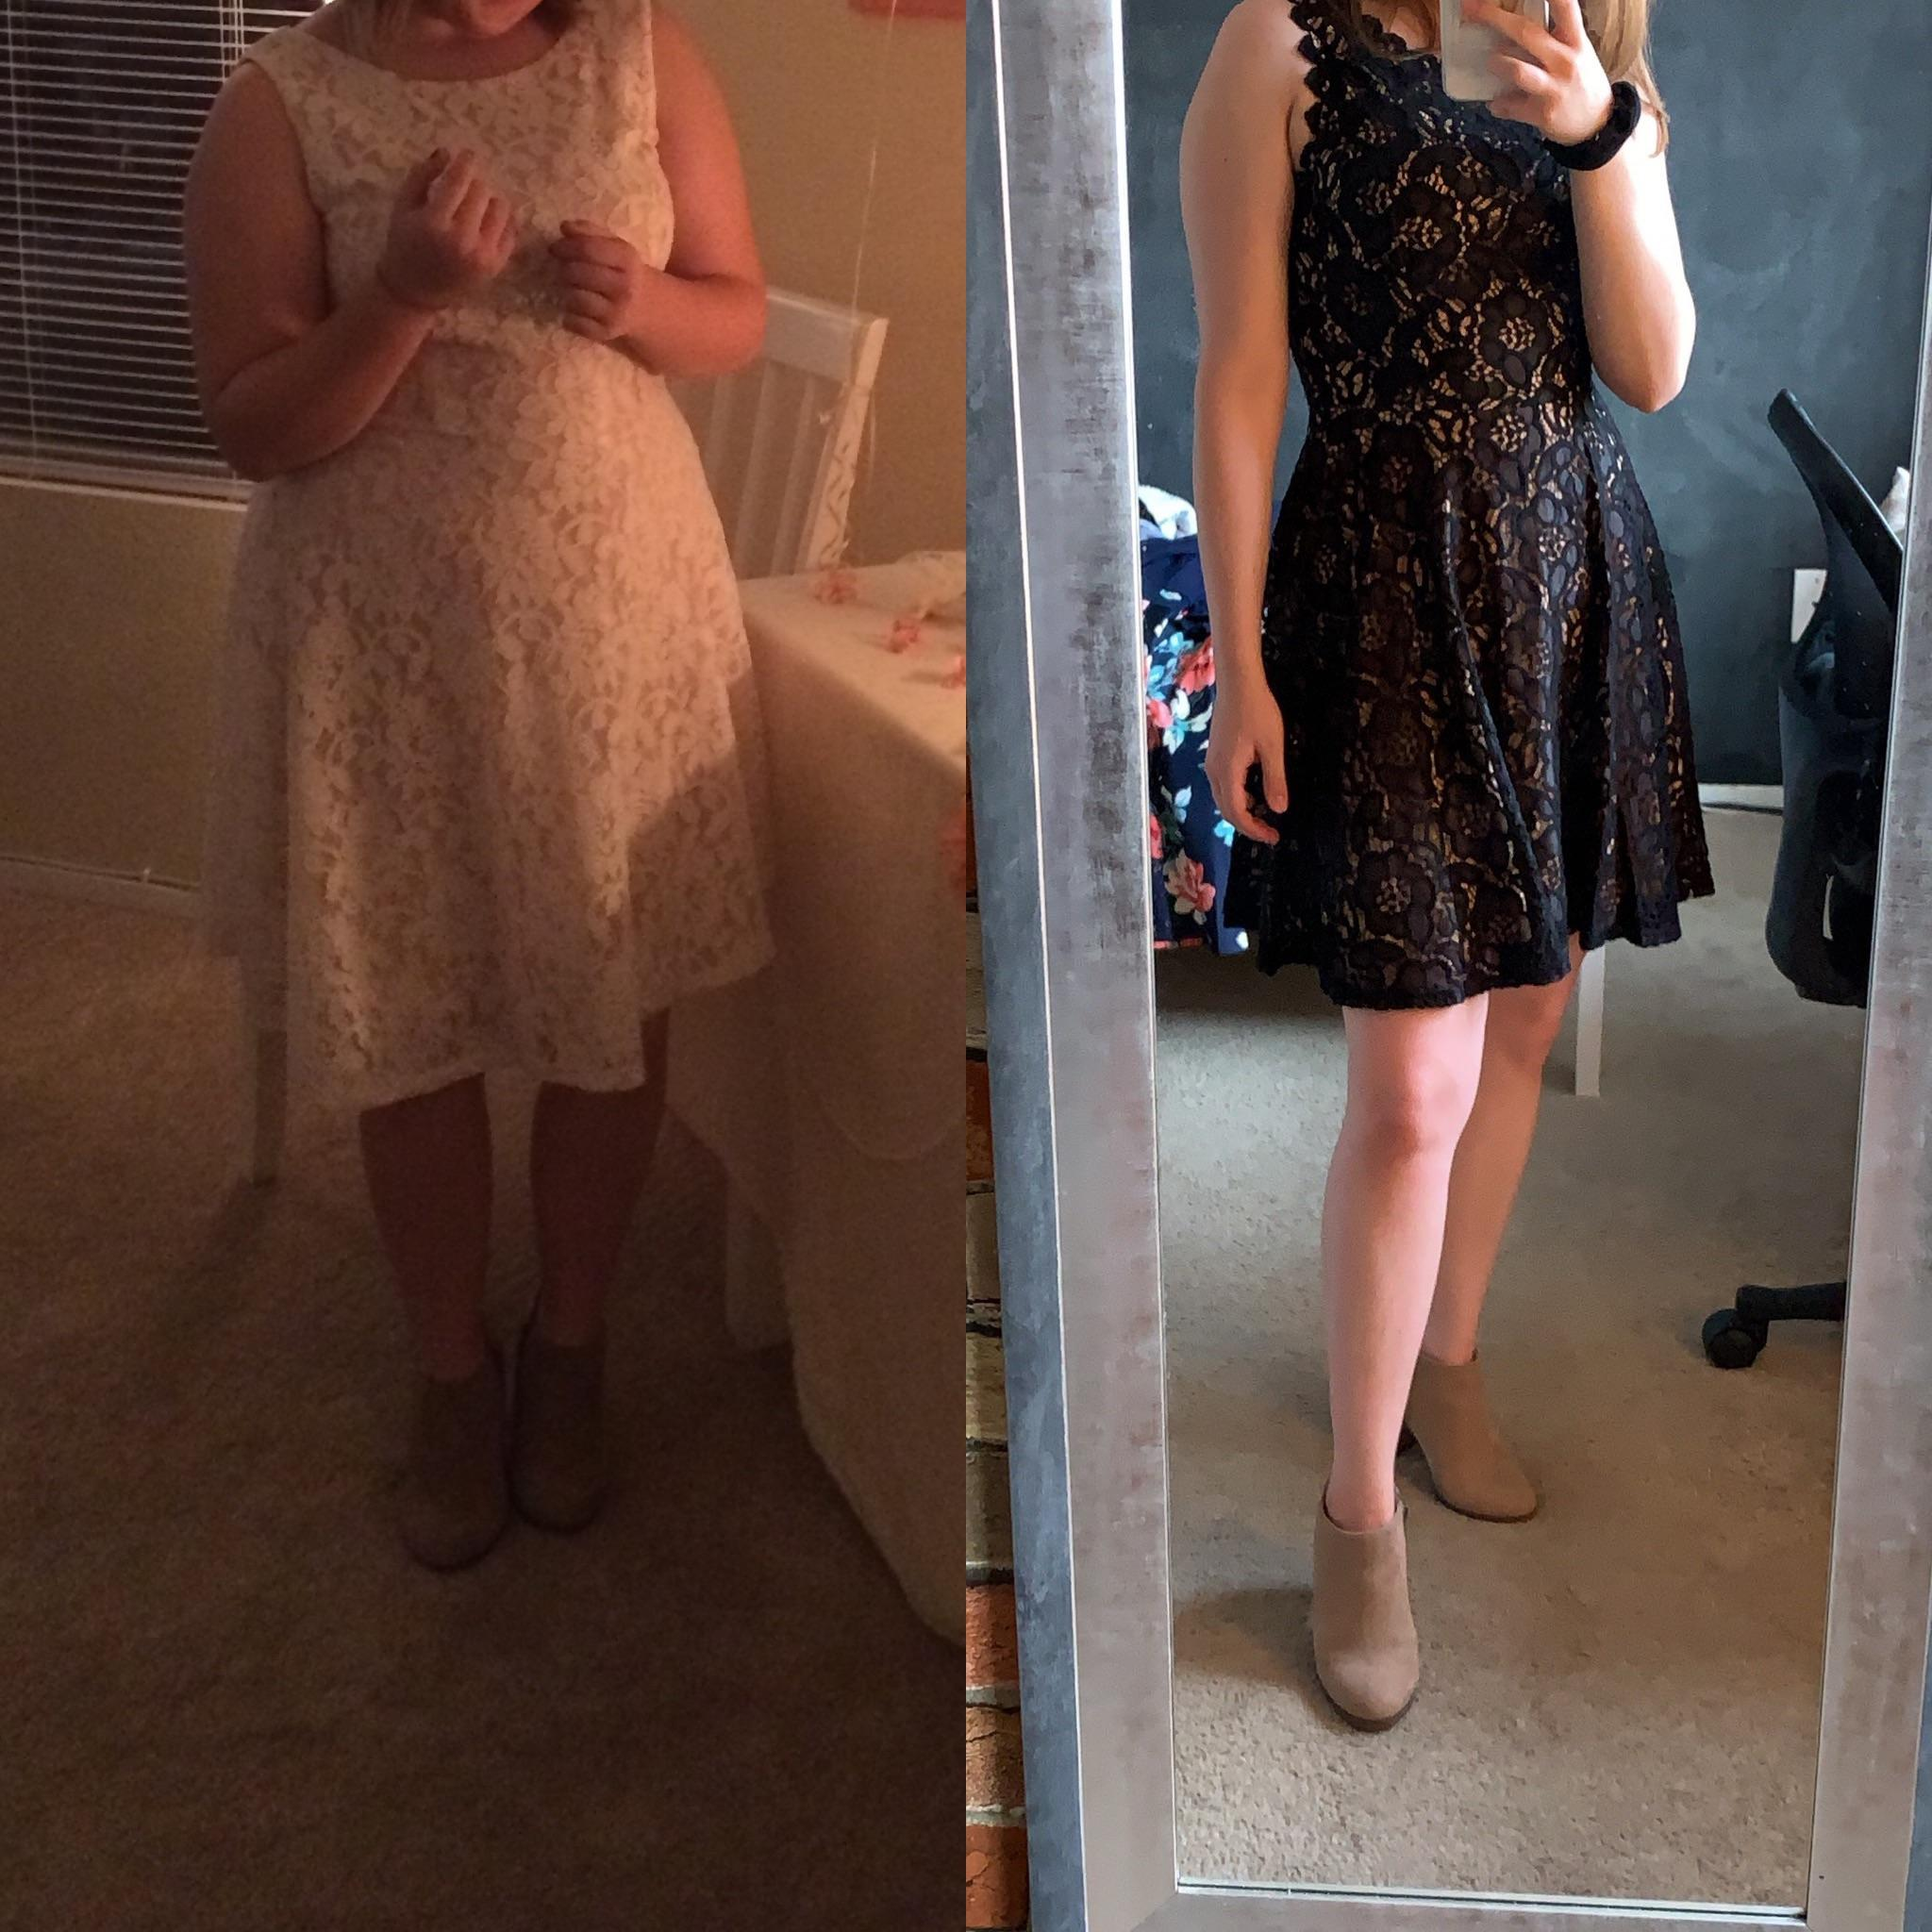 Before and After 42 lbs Weight Loss 5 foot Female 152 lbs to 110 lbs